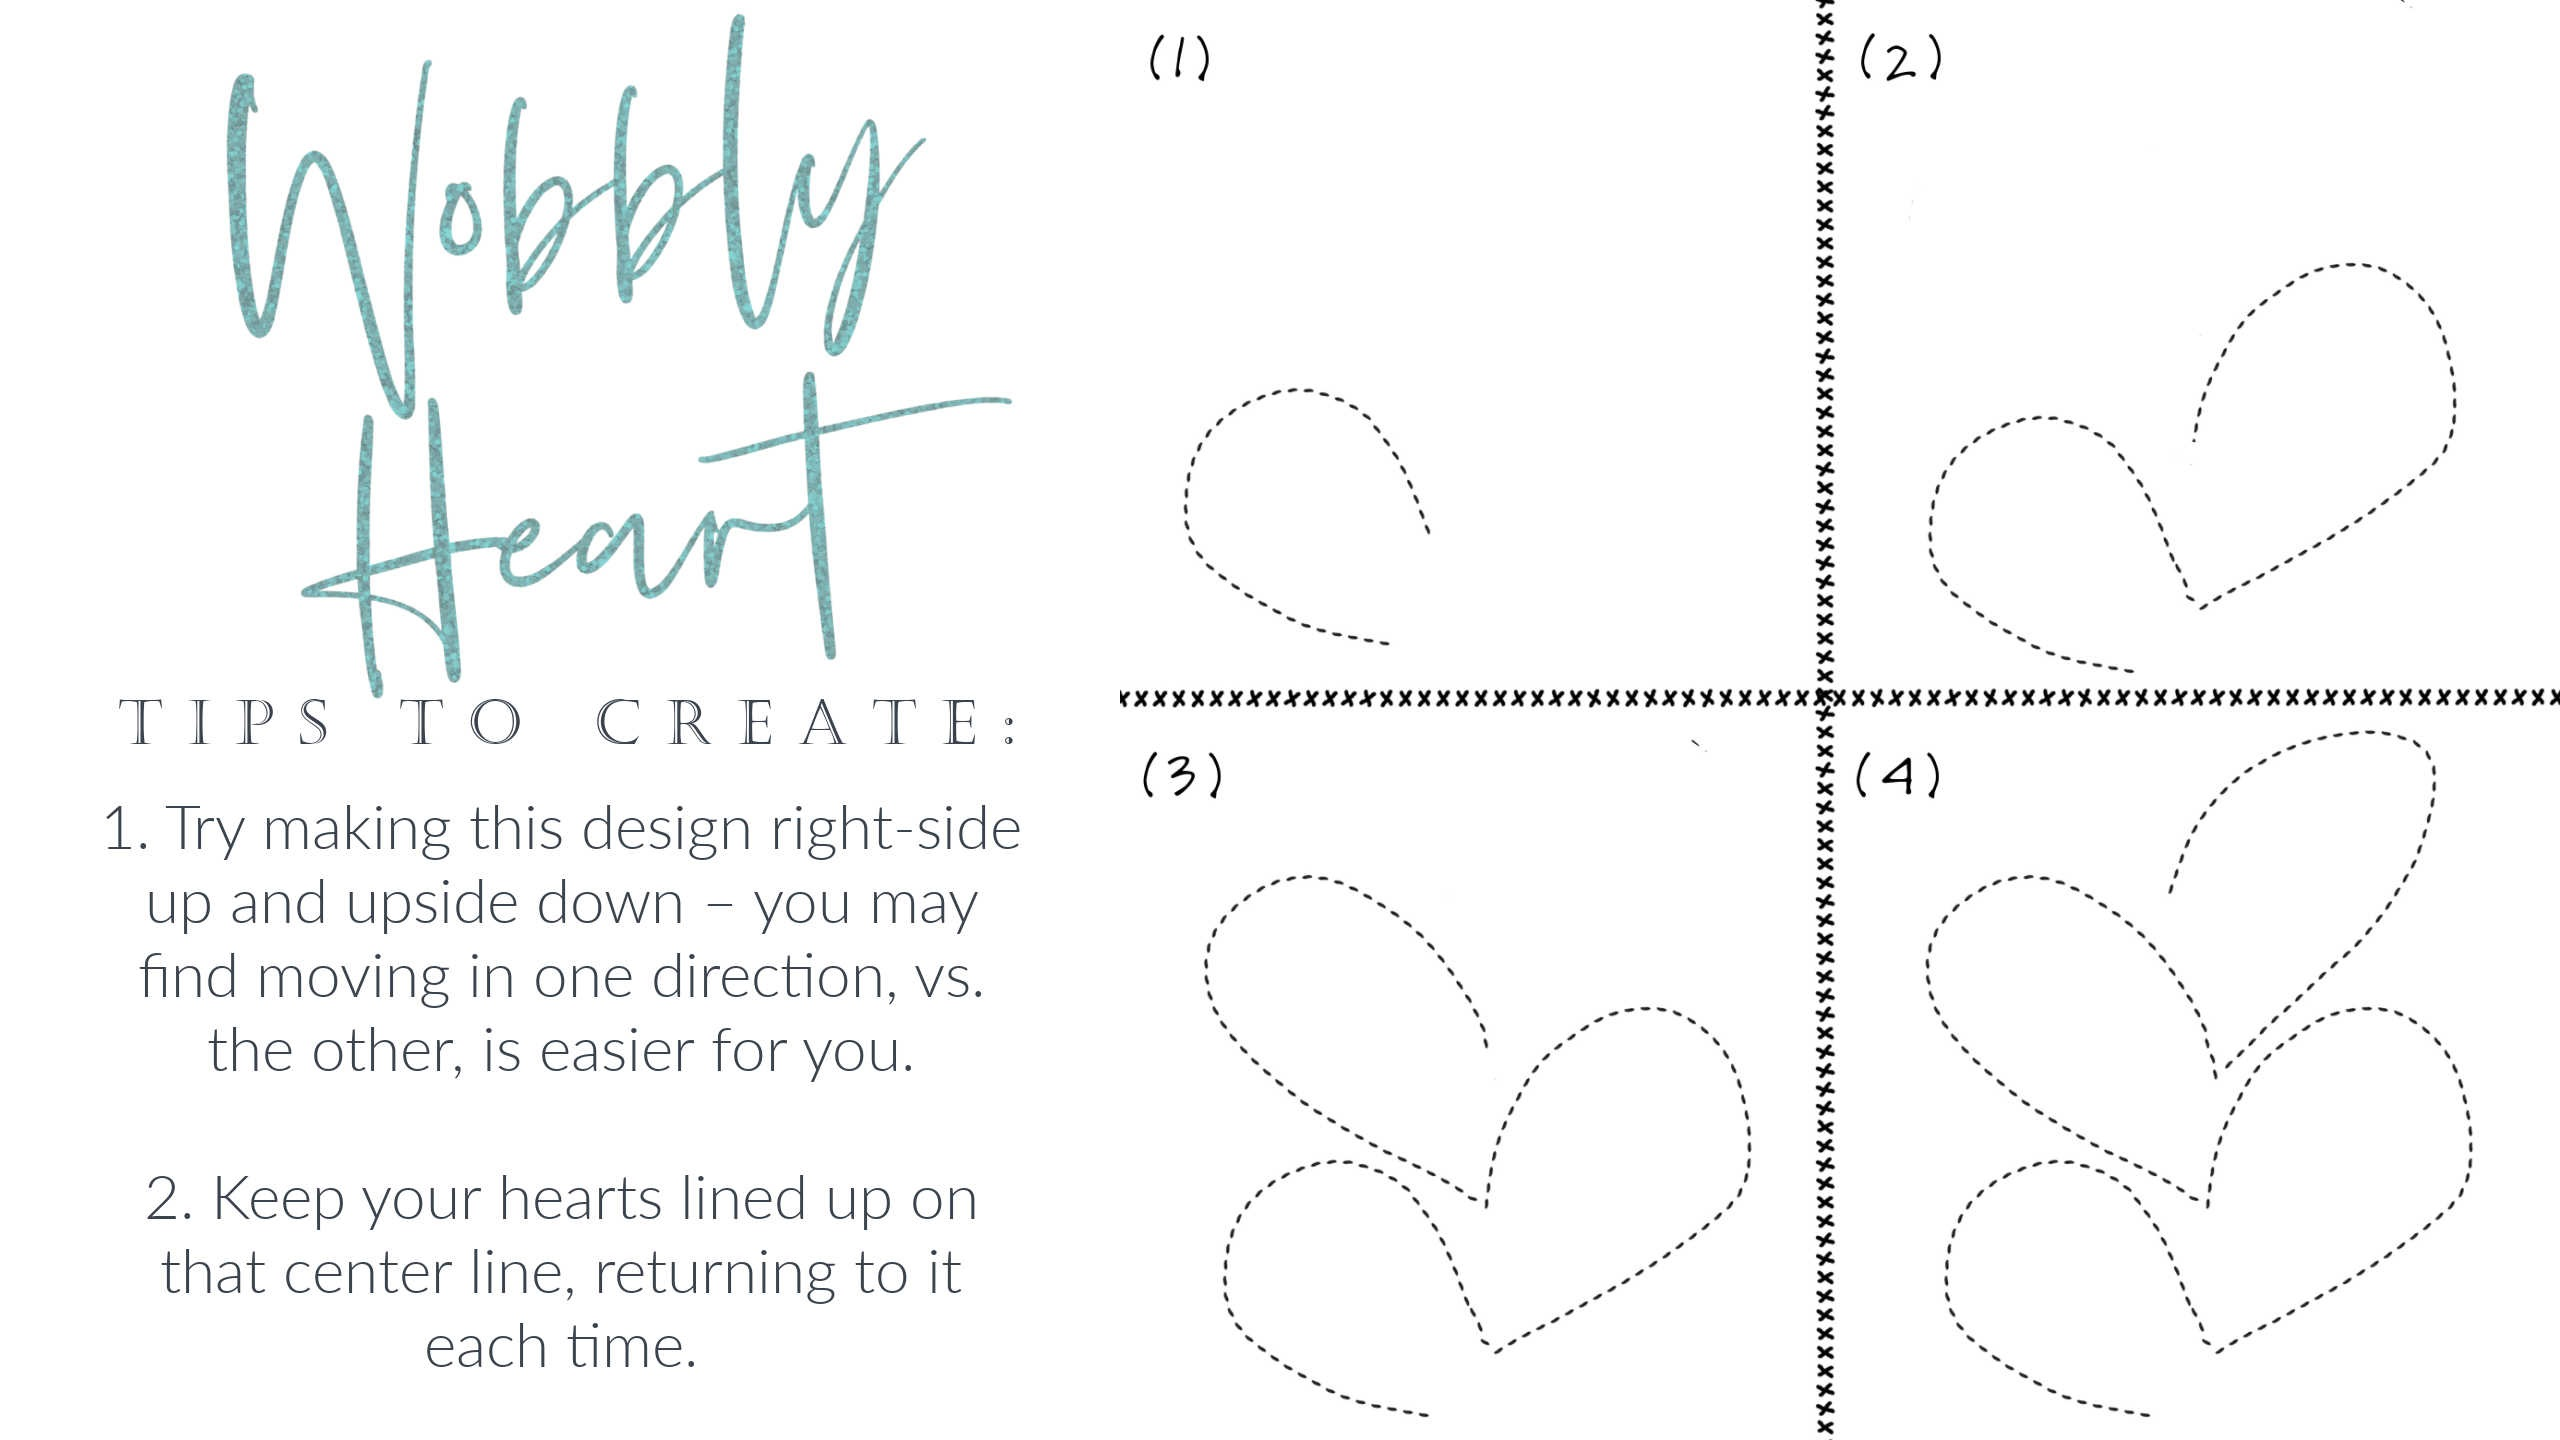 In this step-by-step video tutorial, we show you how to quilt free motion wobbly hearts (similar to feathers). By working from a central line, your wobbly hearts will gently wobble from left to right while remaining centered and even throughout your design!